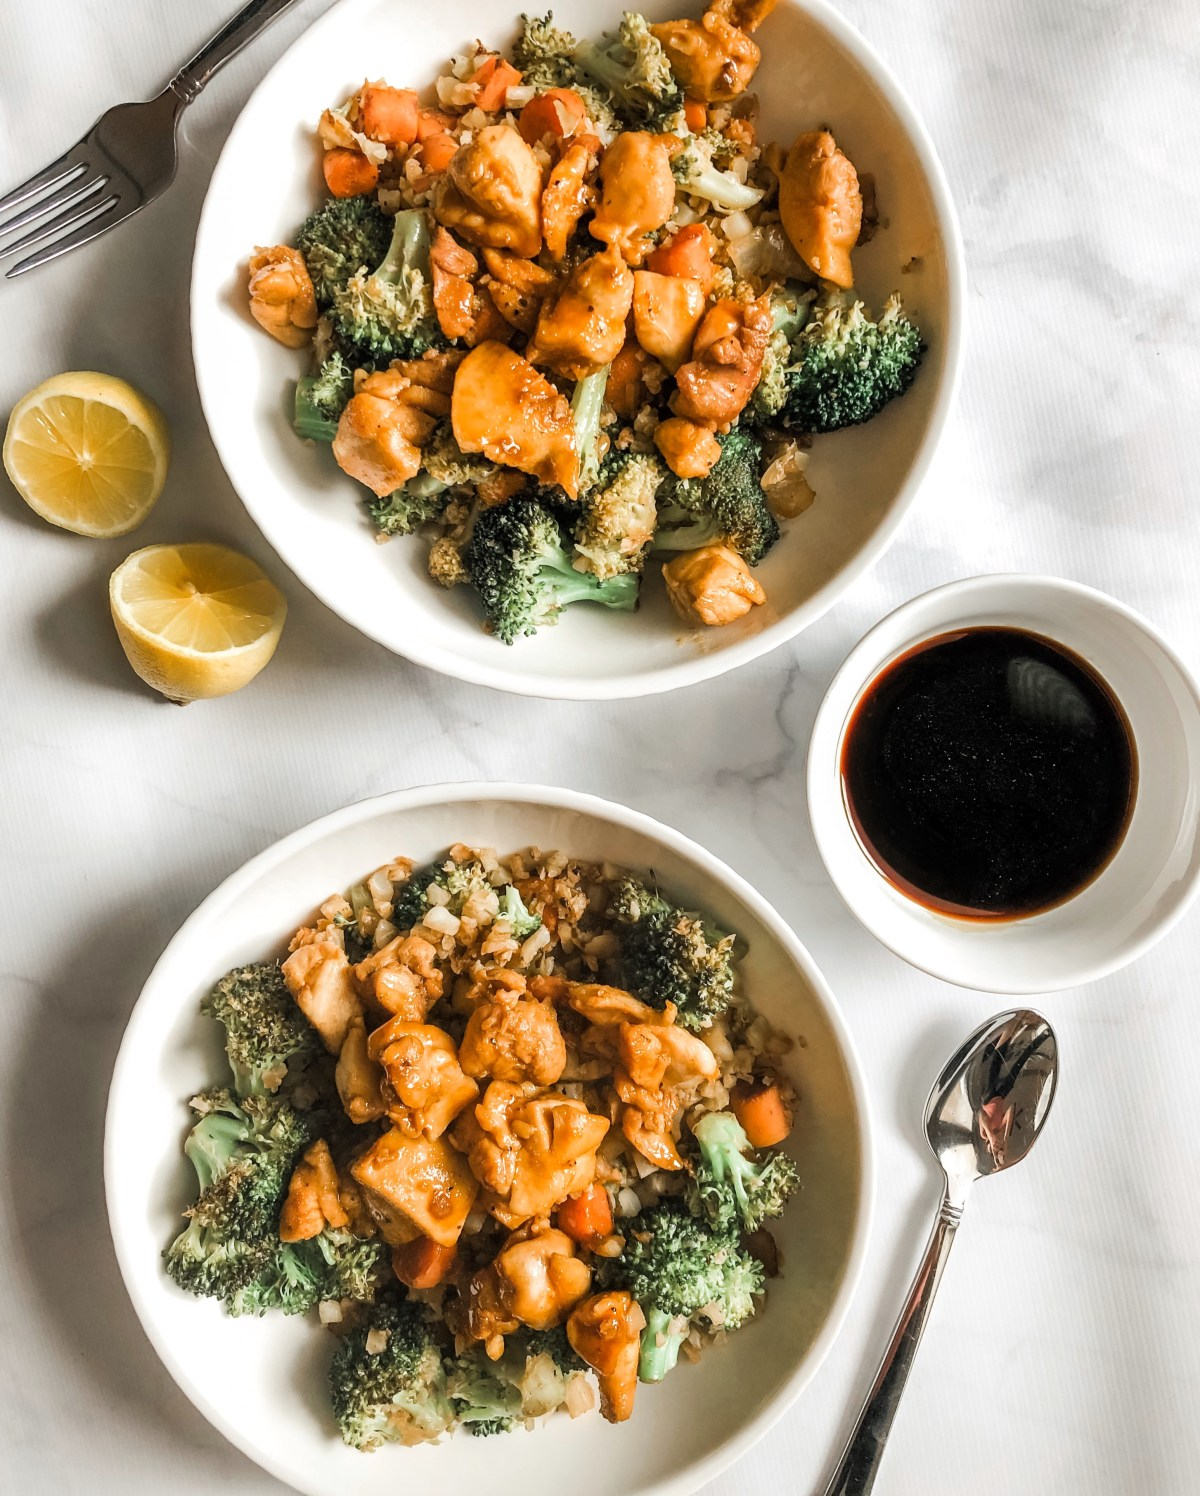 Paleo Teriyaki Chicken Stir-Fry